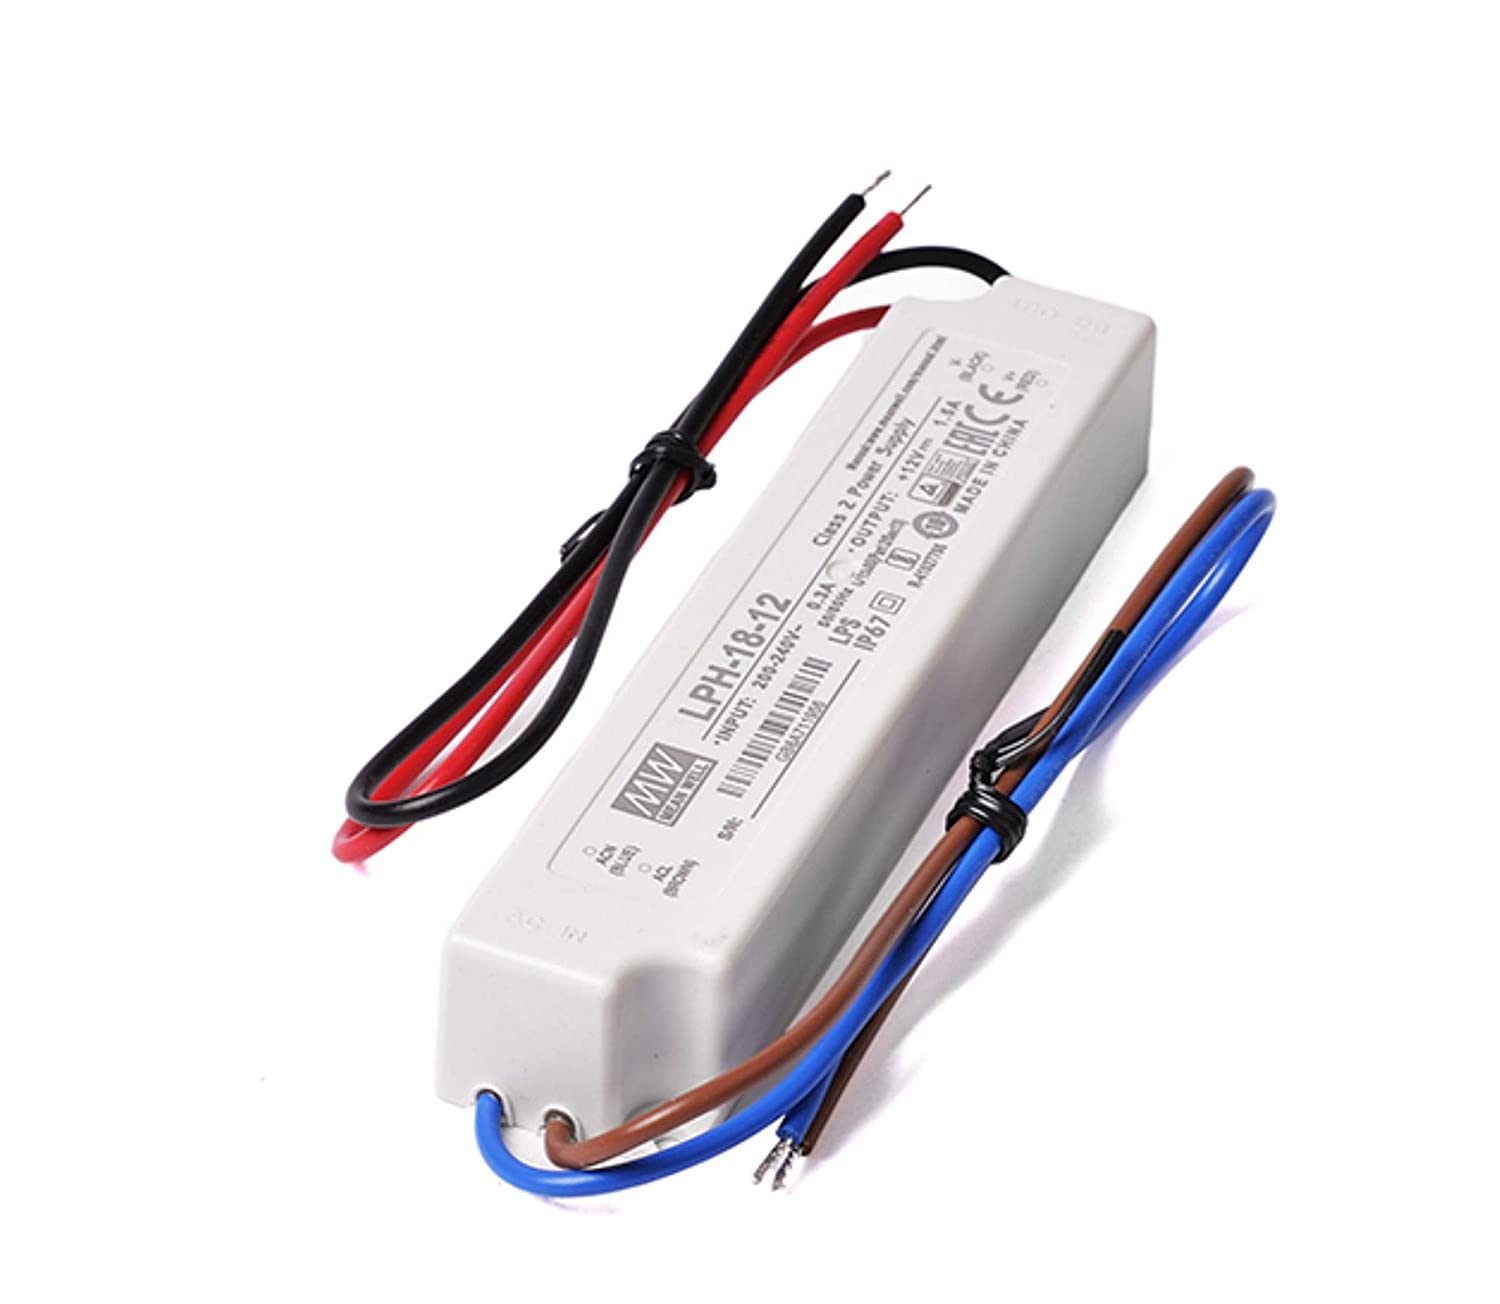 0595 c/ód KingLed MeanWell Fuente de alimentaci/ón Mean Well AC//DC LPV-60-12 60W DC 12V Resistente Al Agua IP67 Transformador Switching Mean Well para productos LED Serie LPV